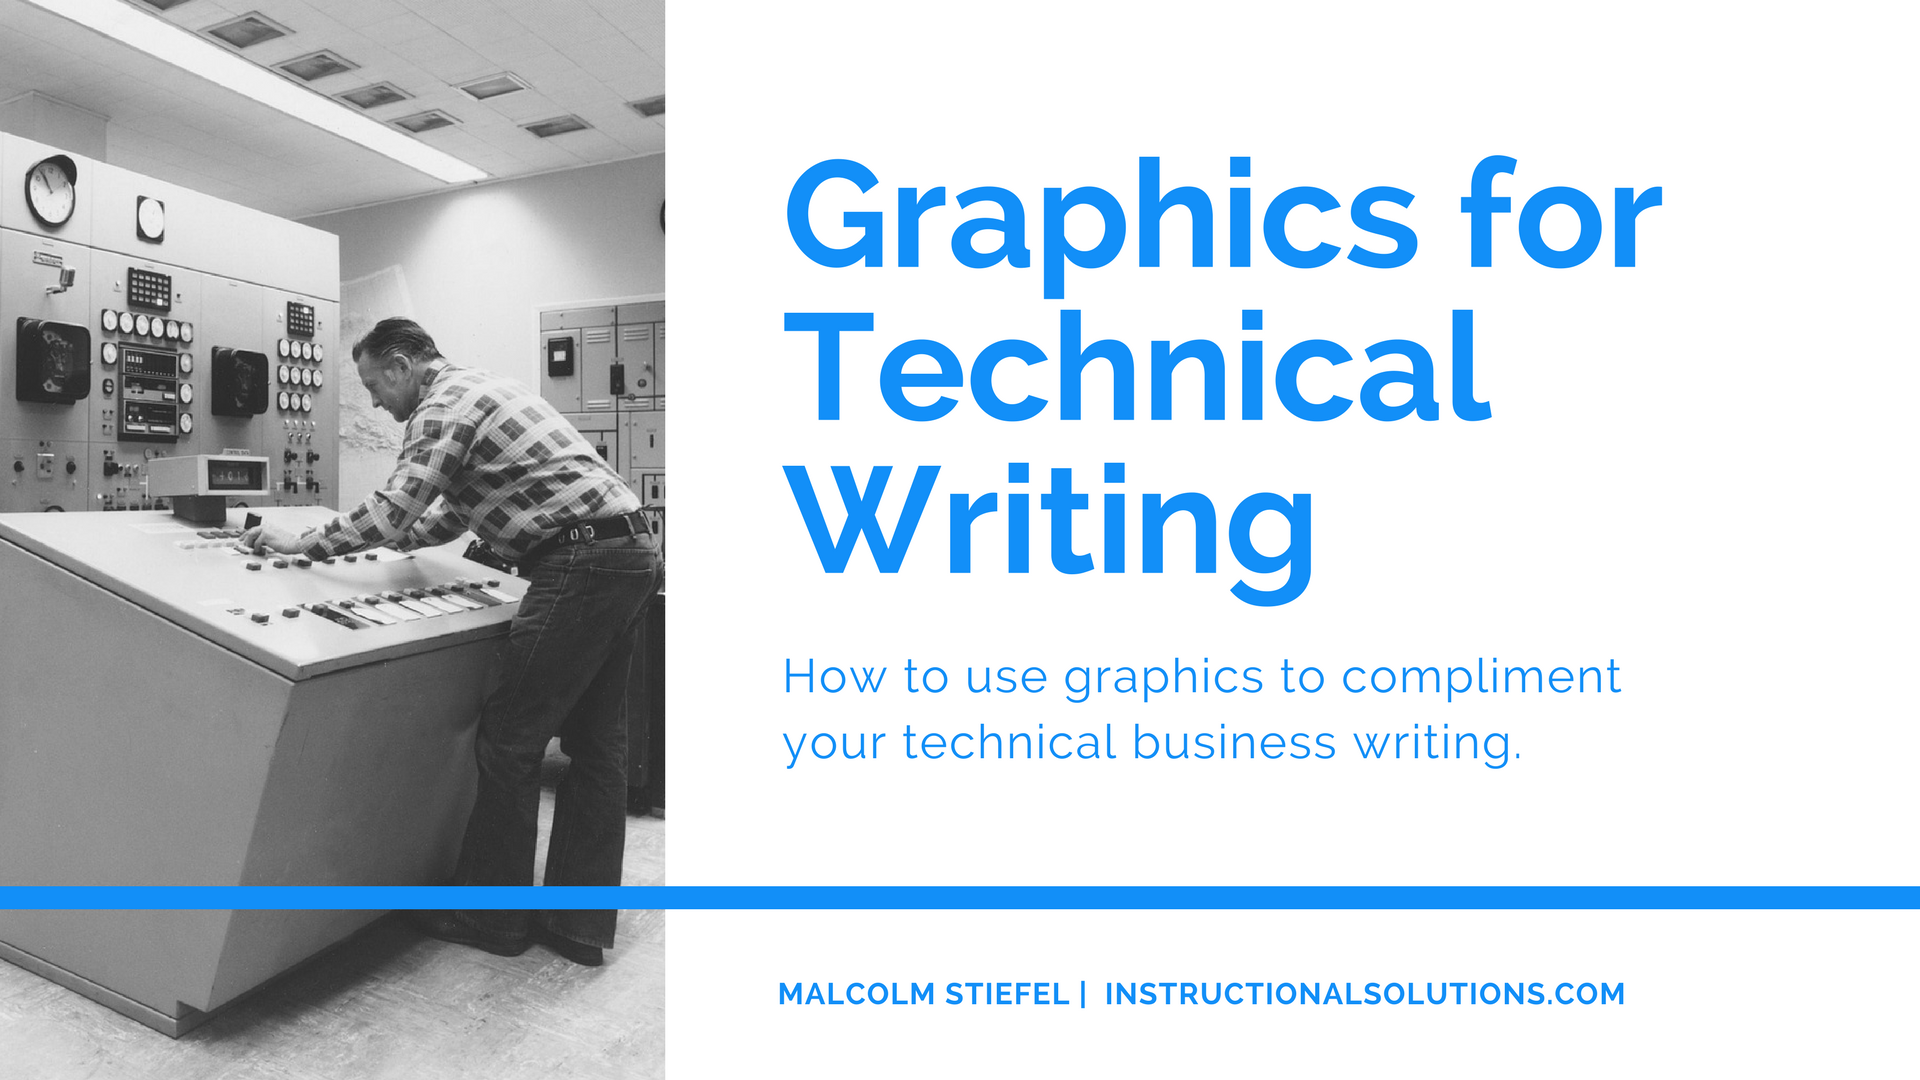 How to Use Graphics in Technical Writing